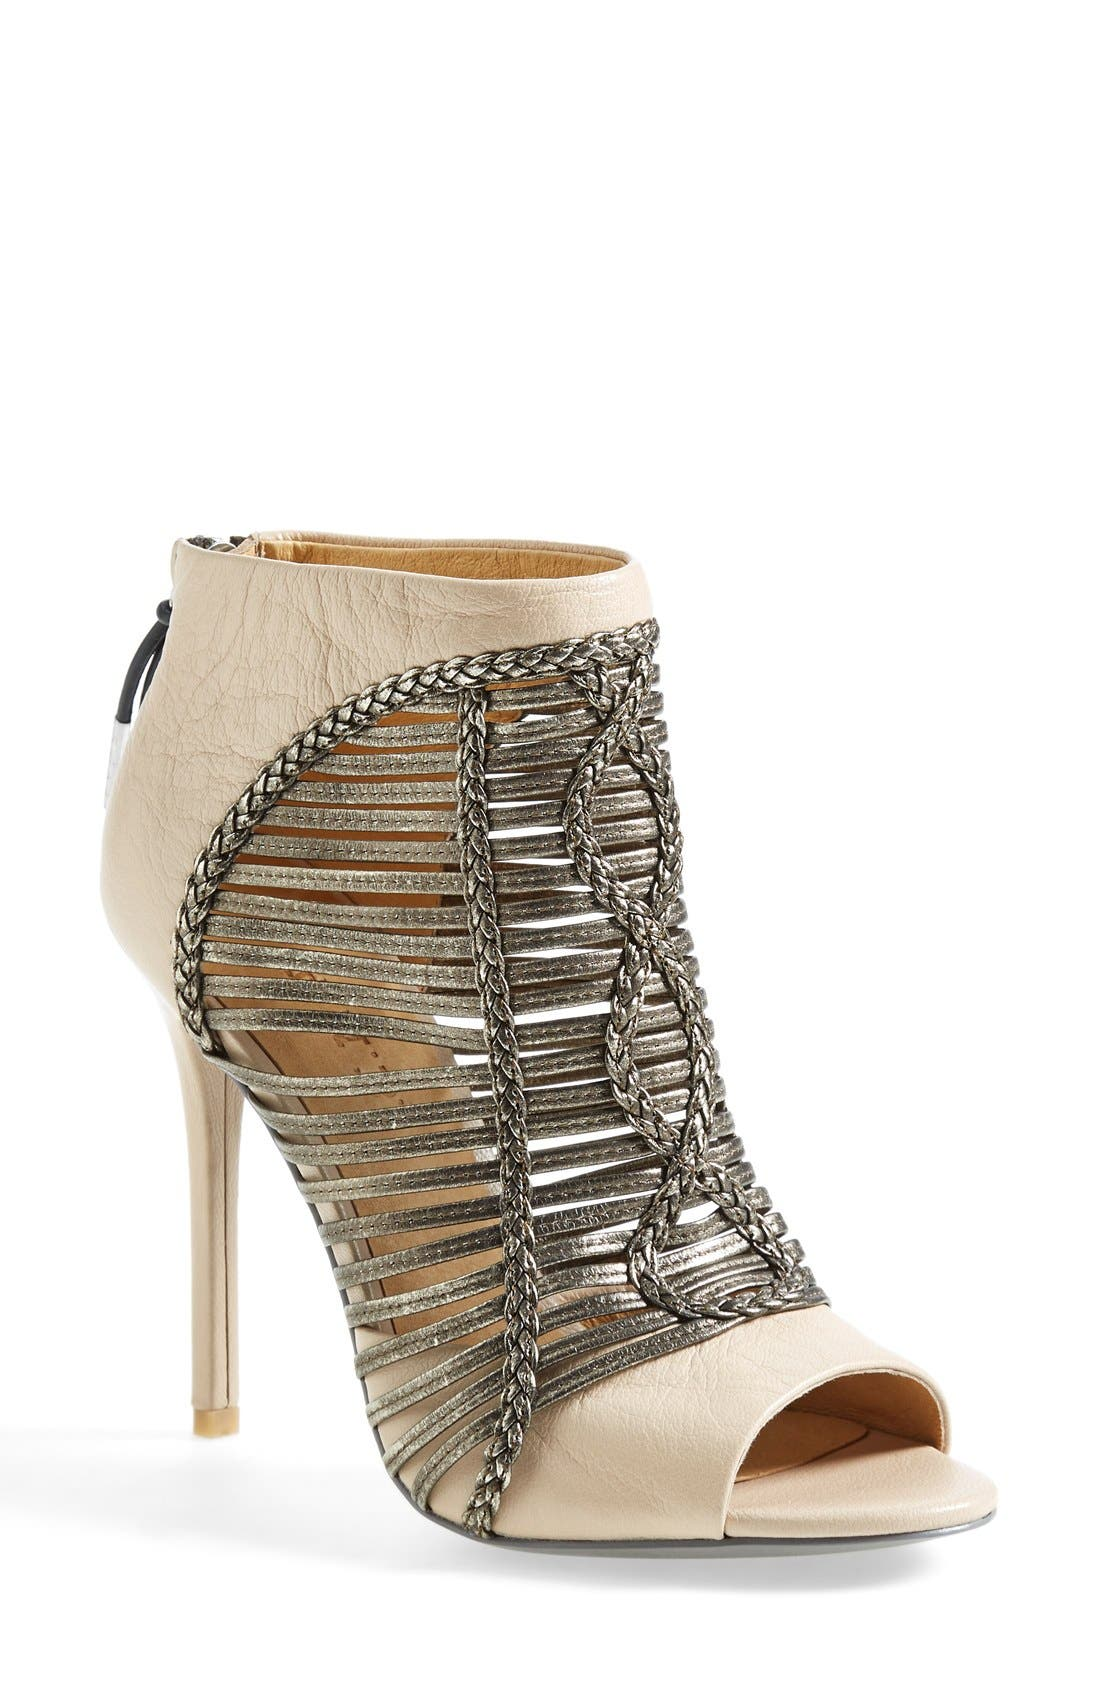 Alternate Image 1 Selected - L.A.M.B. 'Kacee' Peeptoe Bootie (Women)